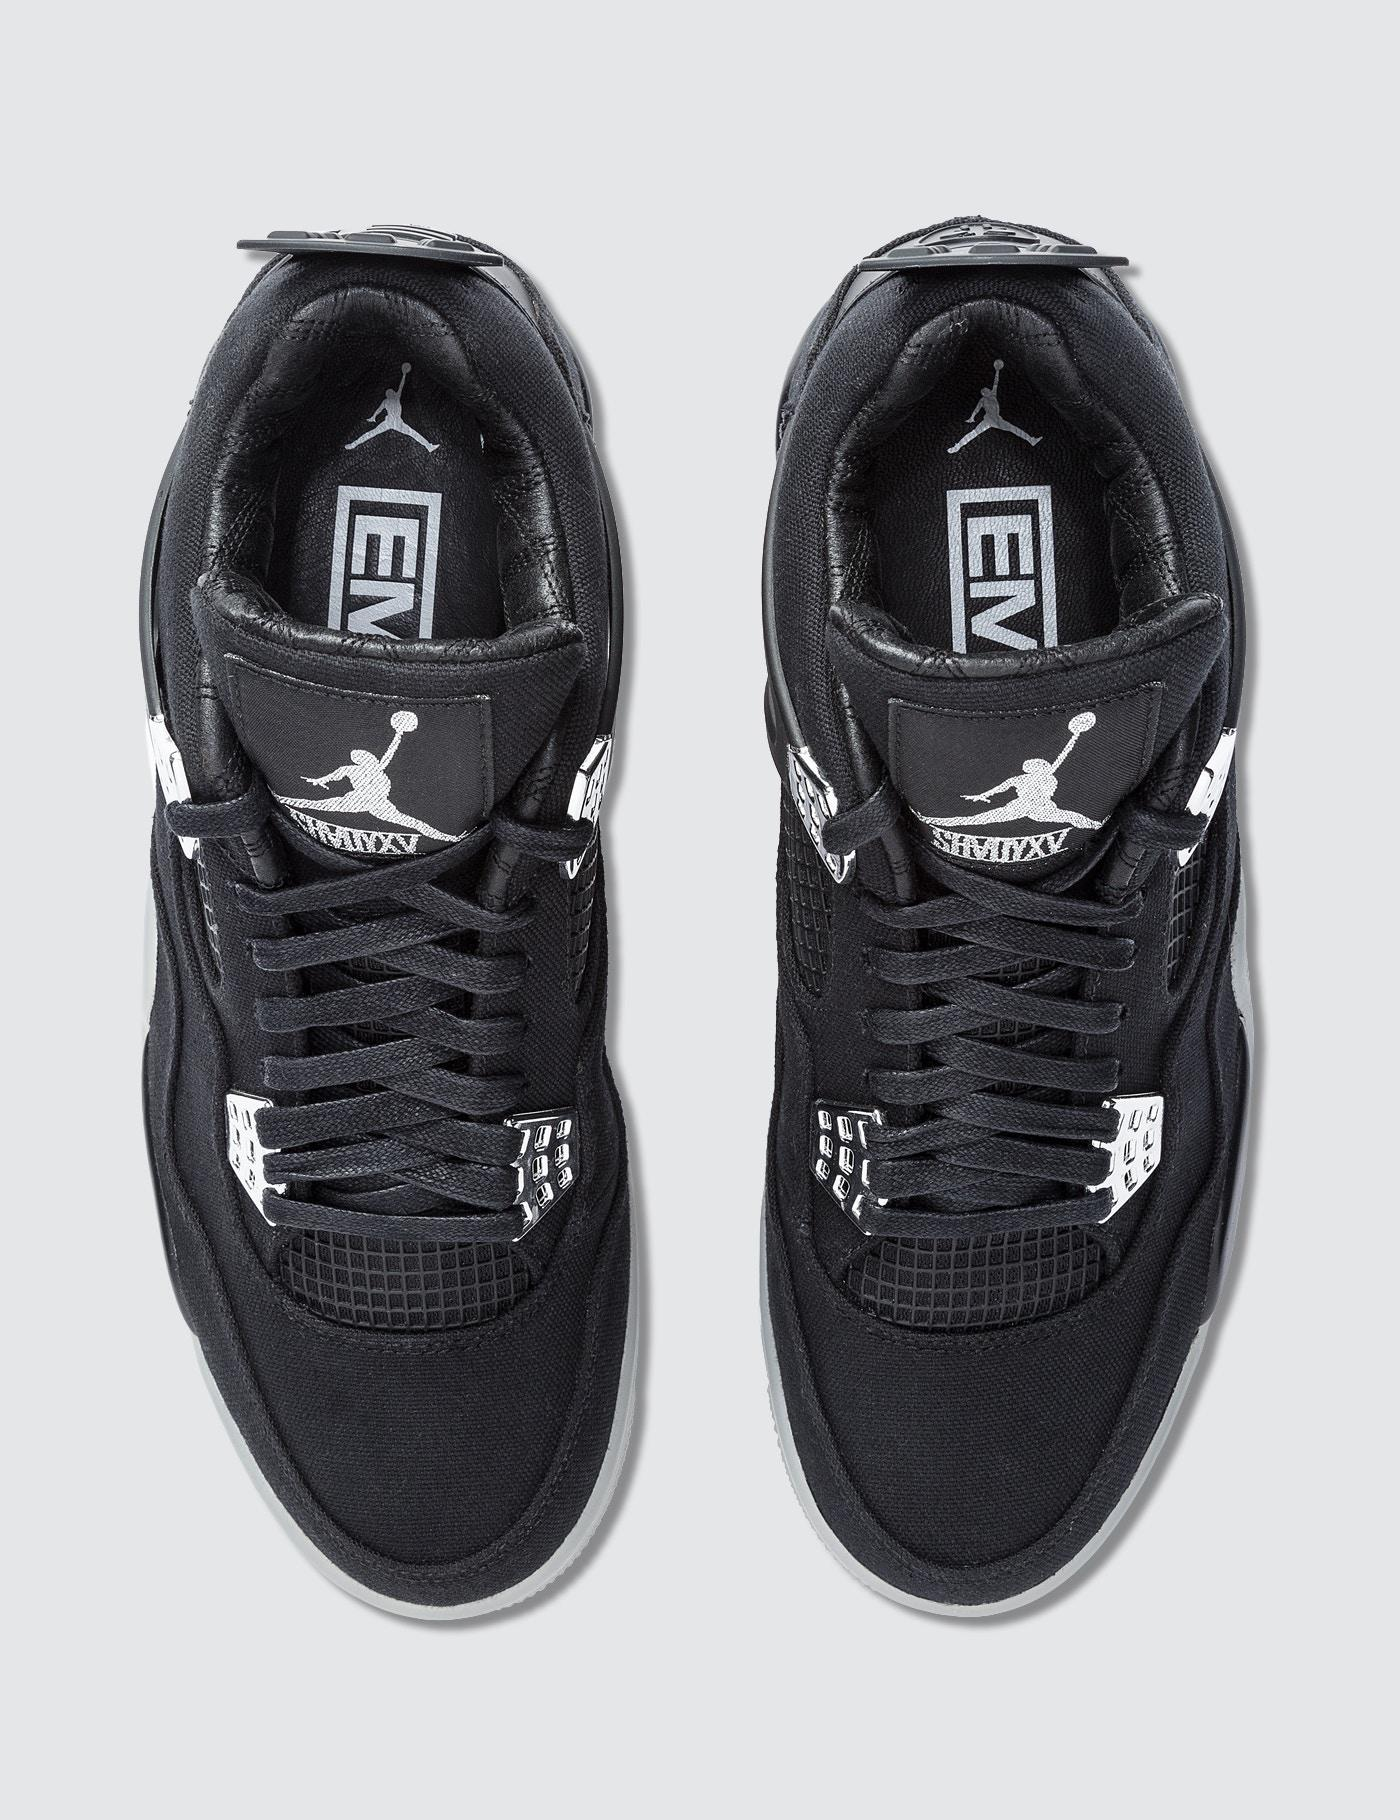 promo code 5b7e1 38196 Nike Black Eminem X Carhartt Air Jordan 4 Retro Promo Sample for men